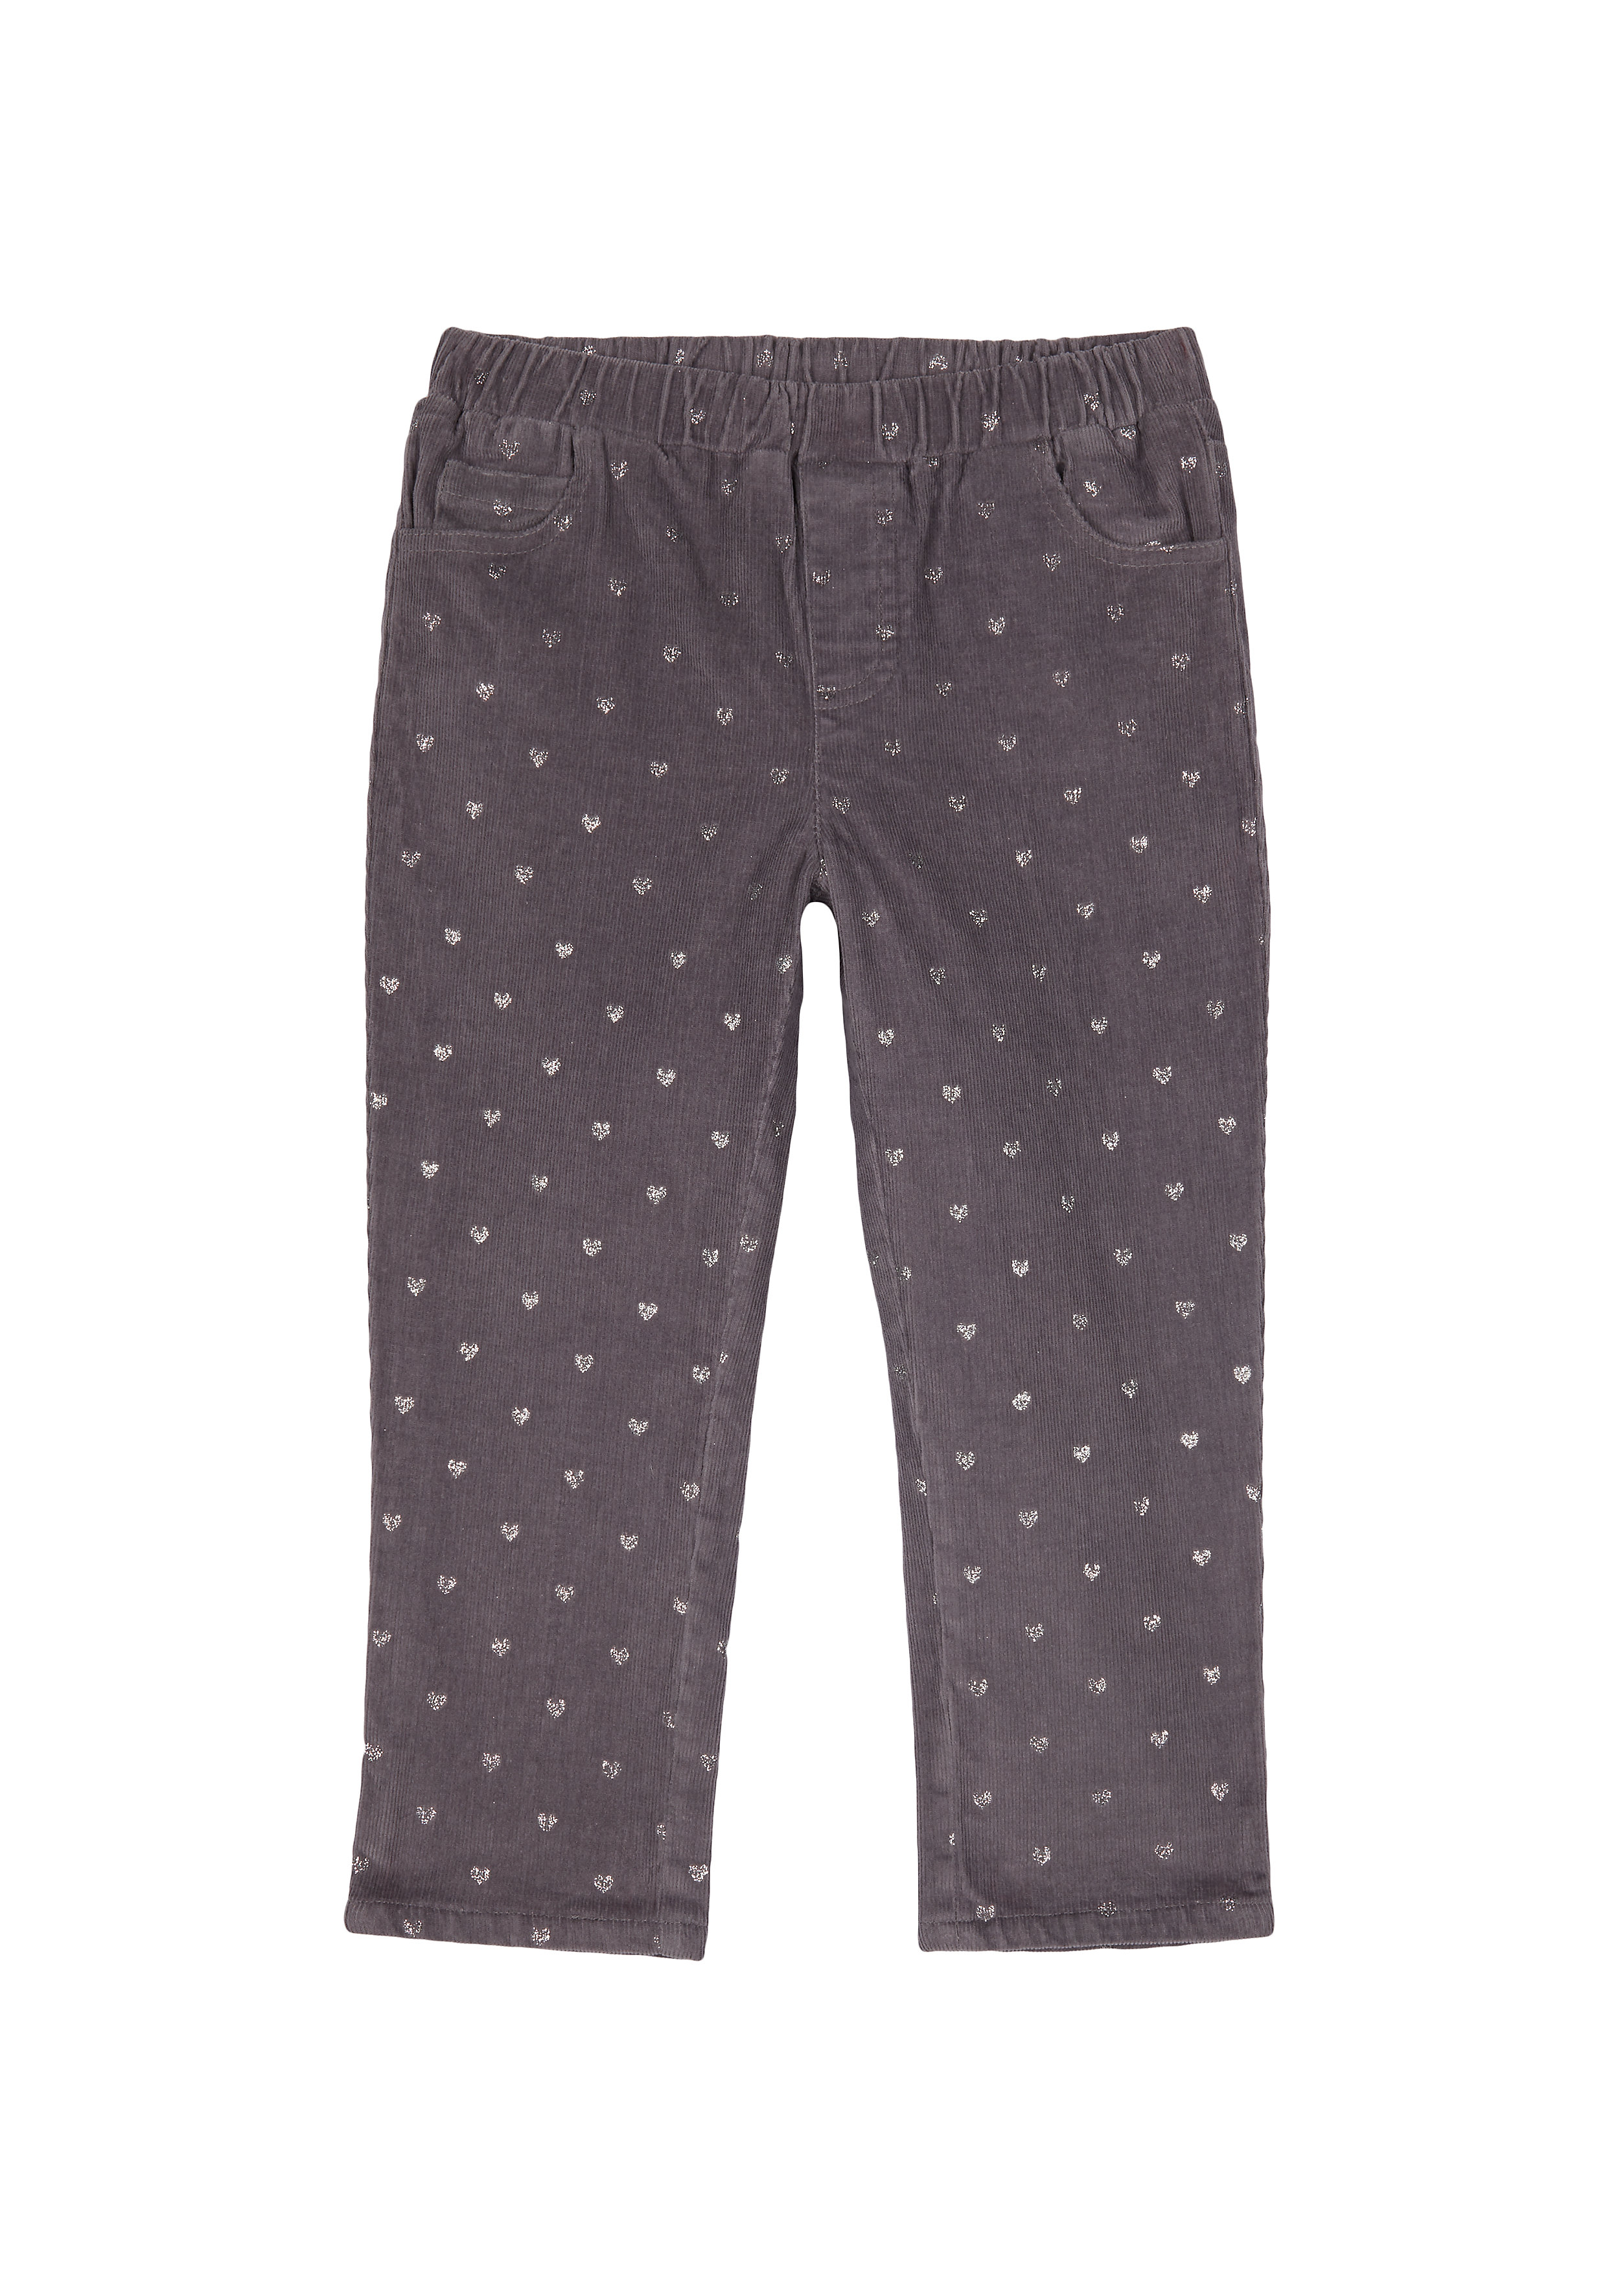 Mothercare   Girls Cord Jeggings Heart Print - Charcoal